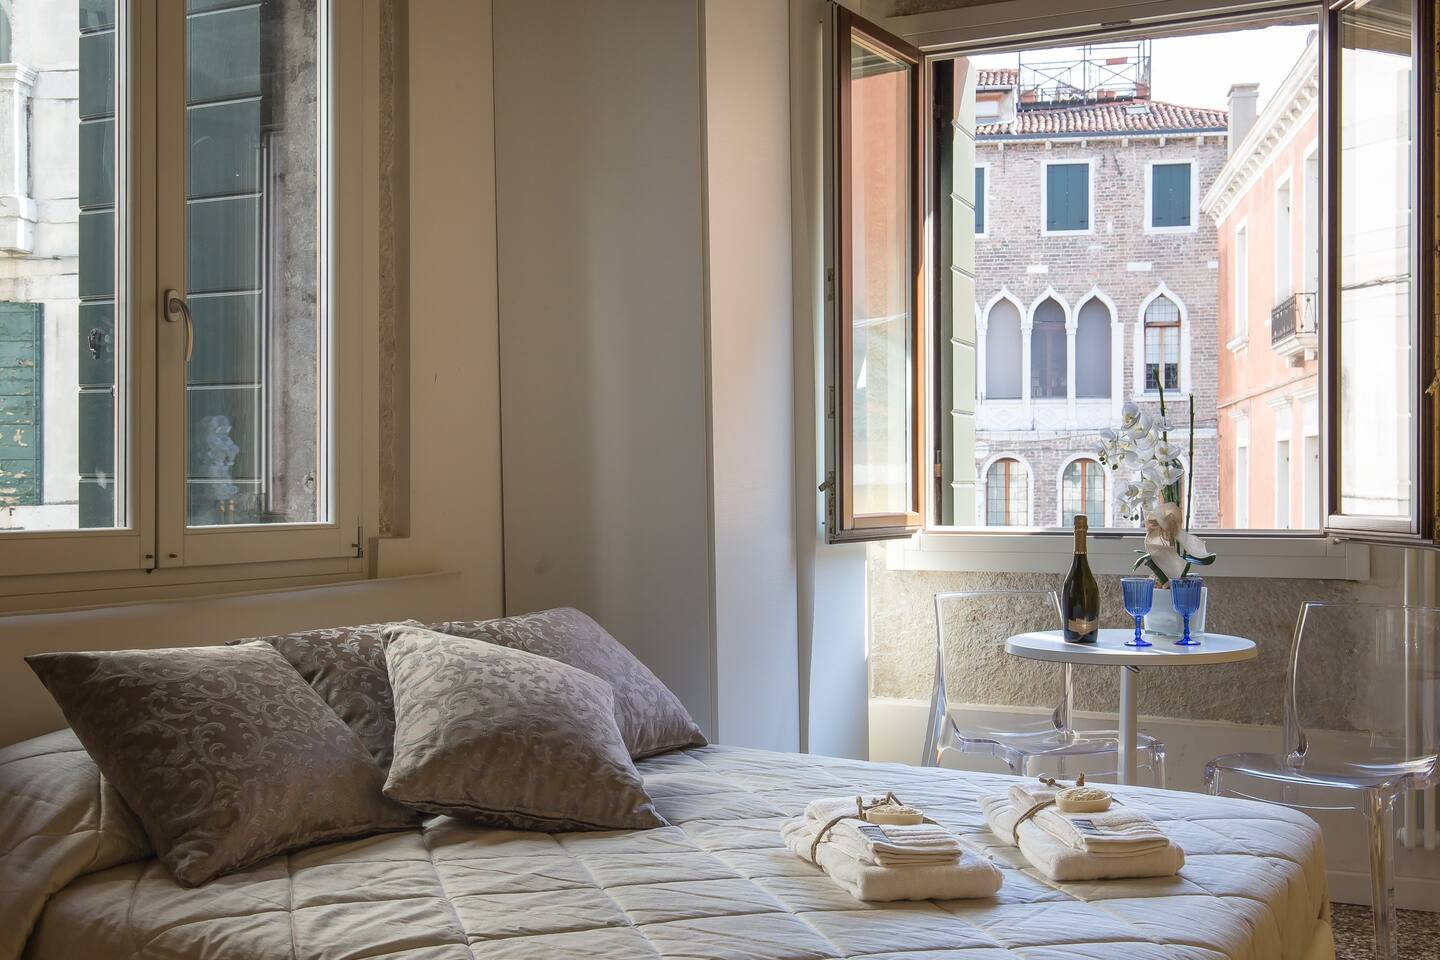 Stay on the oldest bridge in Venice in this Airbnb!